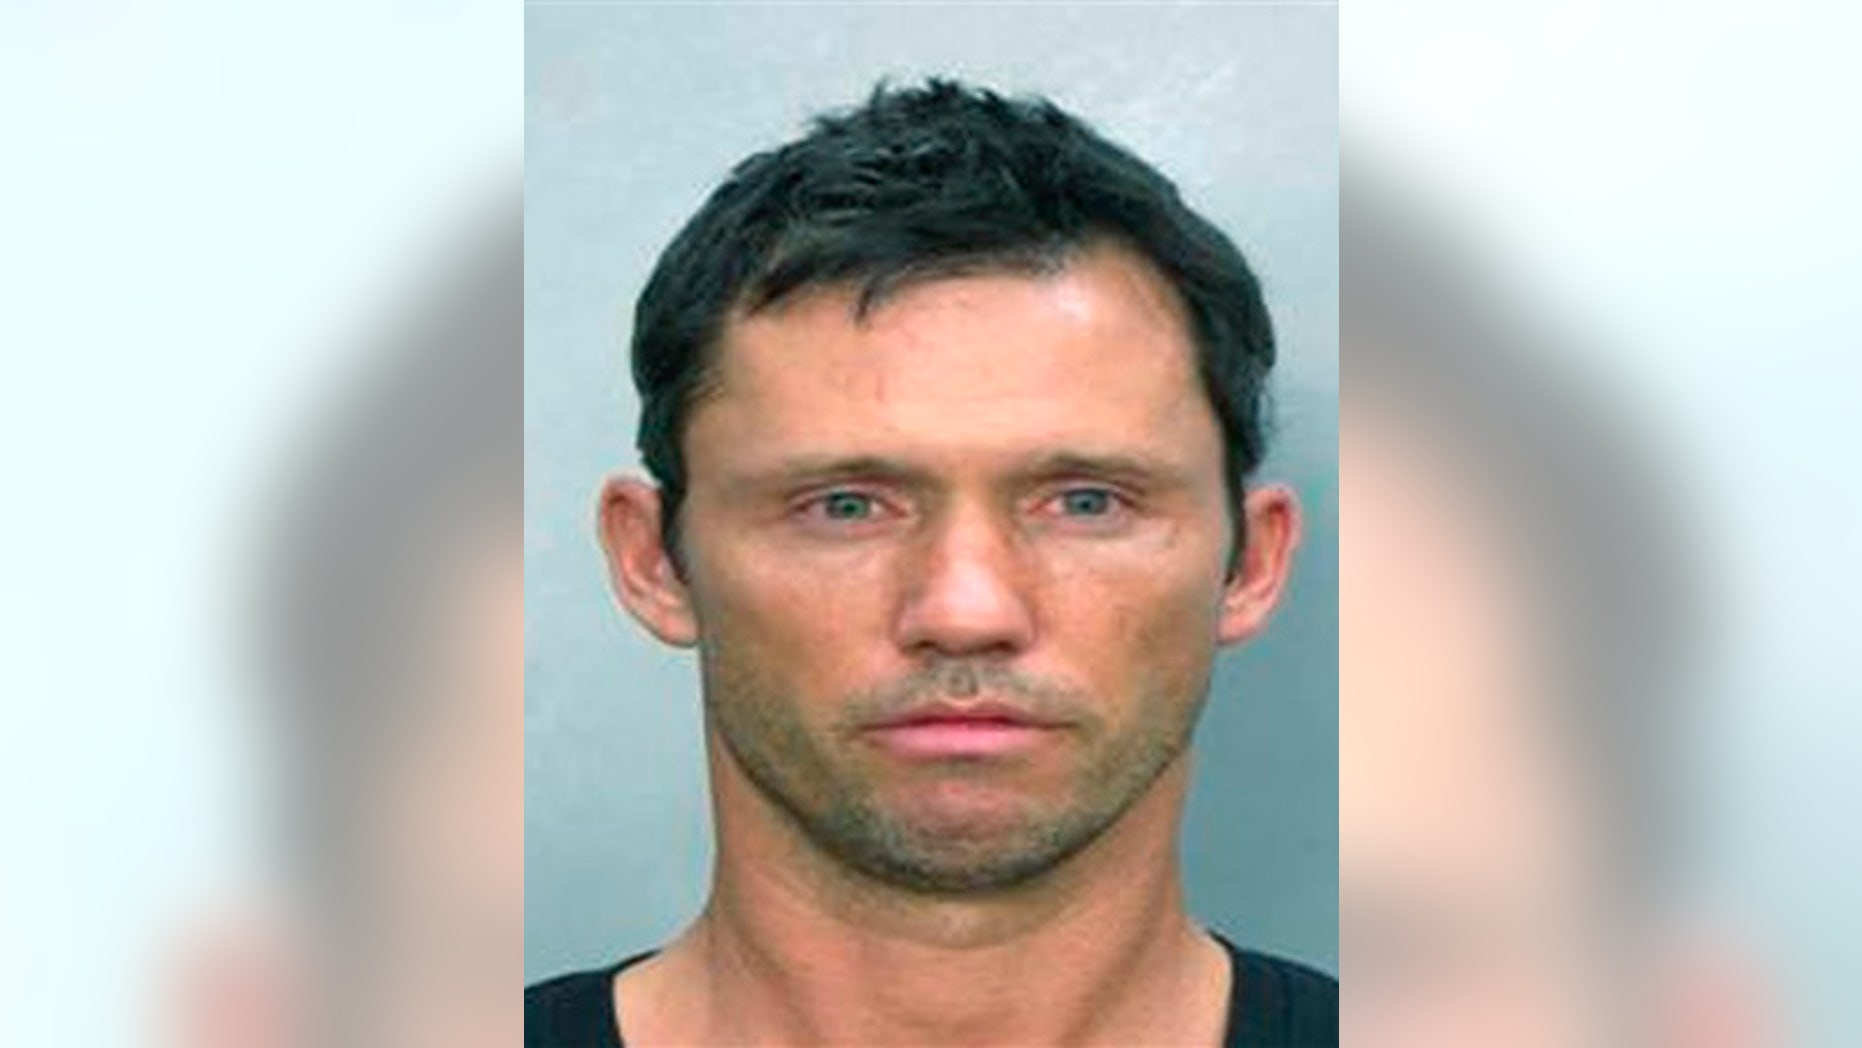 In this image released by the Miami Beach Police Dept., actor Jeffrey Donovan is seen in this booking photograph released by the Miami Beach, Fla. Police Dept. Donovan was charged with DUI on Sunday July 12, 2009. (AP Photo/Miami Beach Police Dept)